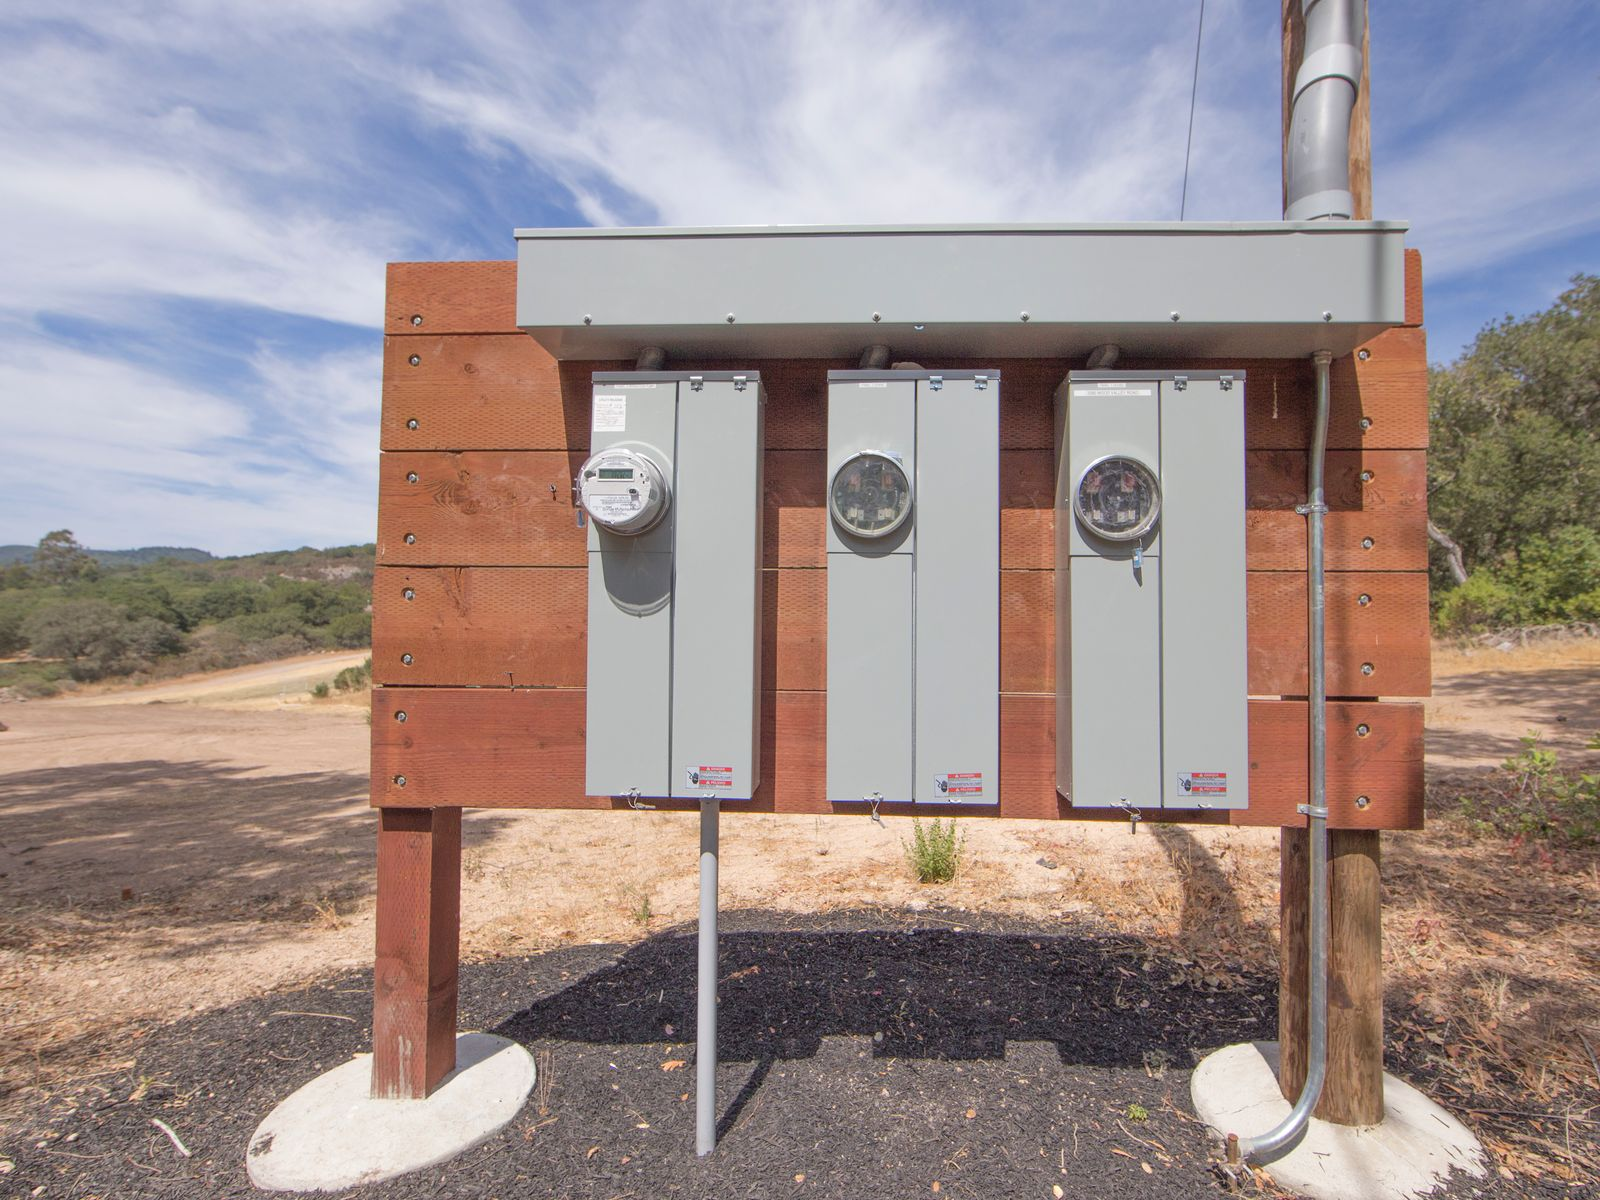 400 AMP power on site expandable to 600 AMPS.